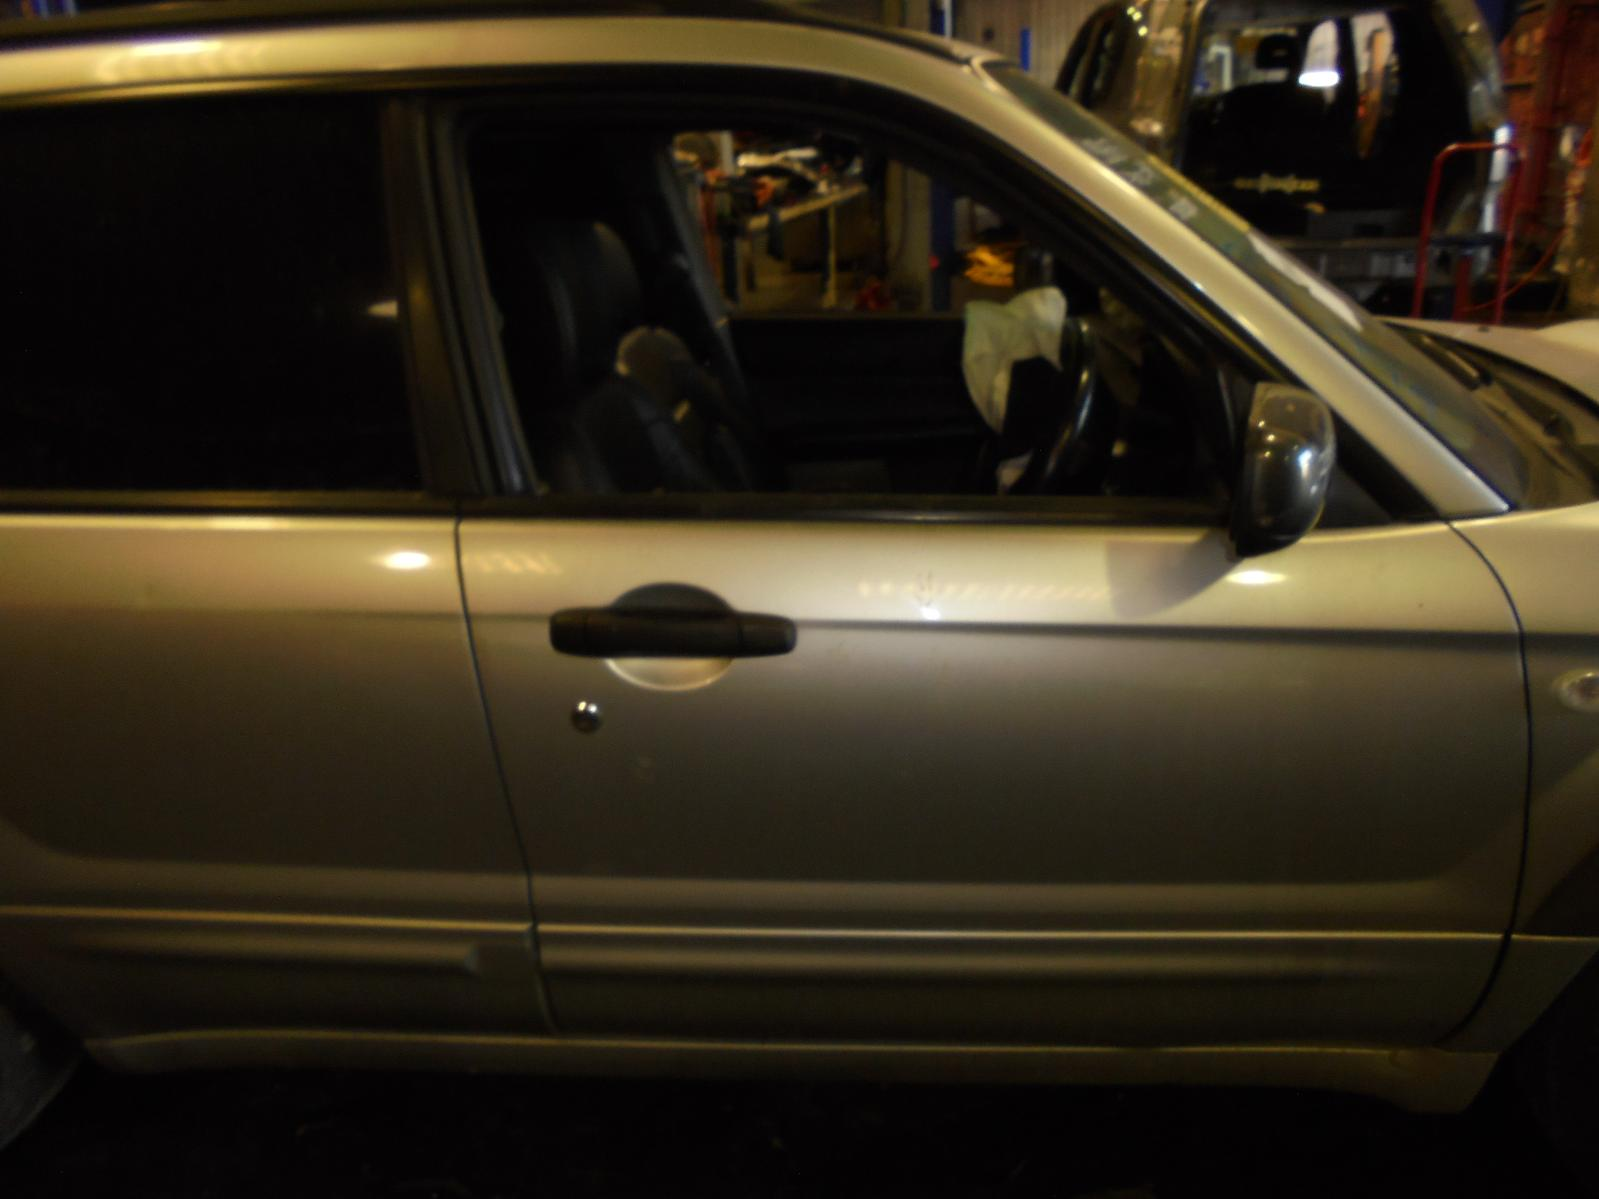 View Auto part Misc Subaru Forester 2003